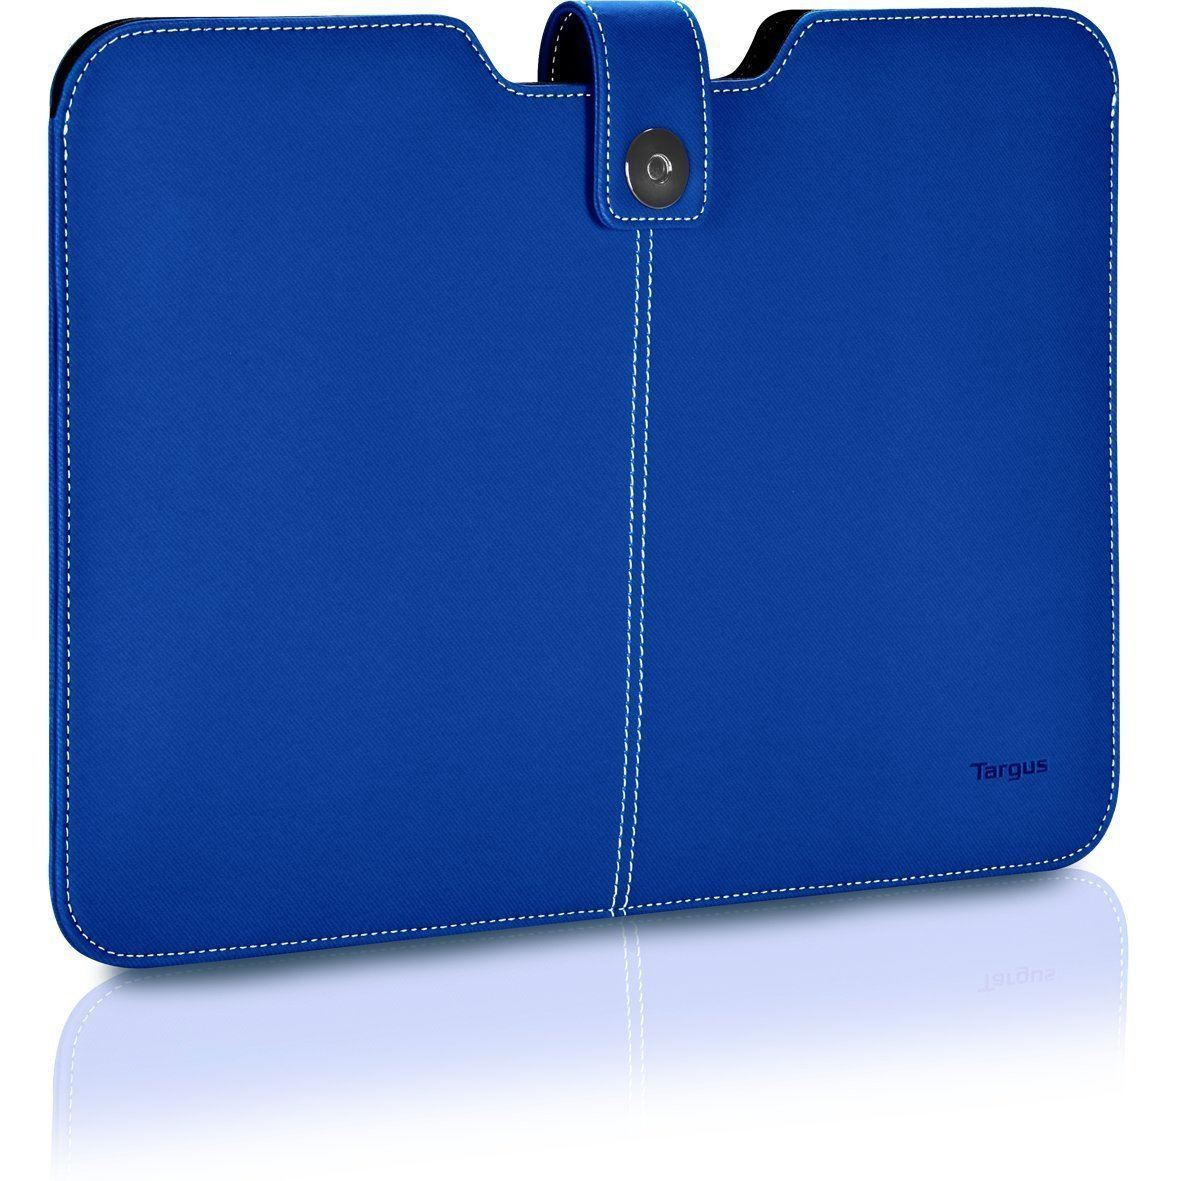 Targus-Funda-Para-Laptop-Notebook-Carry-funda-de-13-034-Macbook-Air-amp-Pro-En-Azul